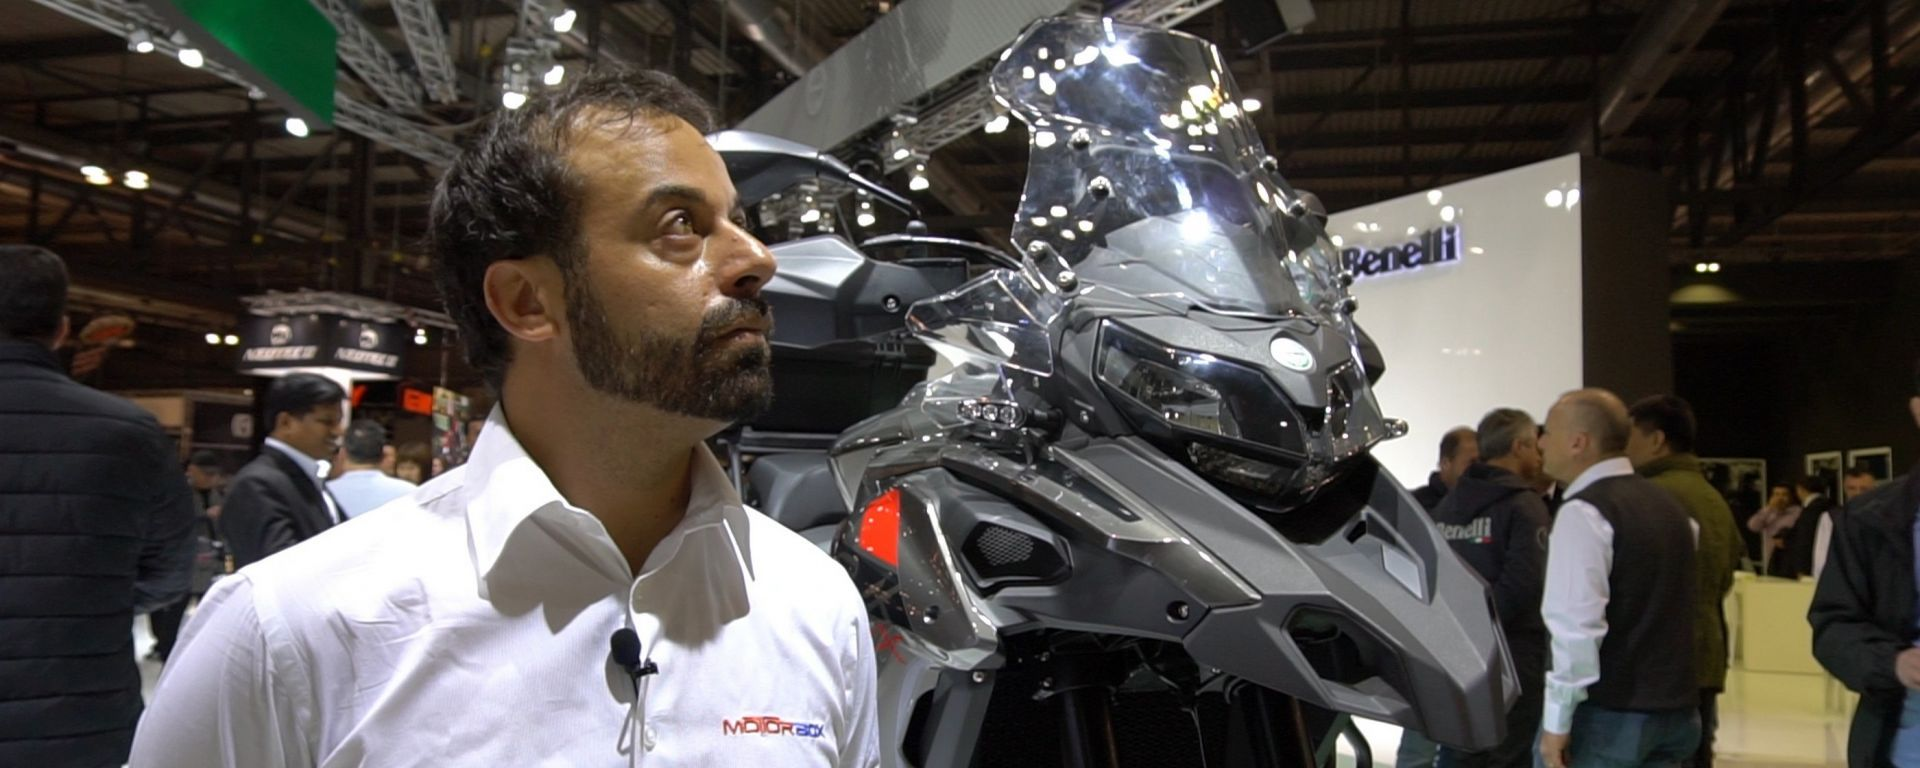 Benelli TRK 502X, pronta per il fuoristrada [VIDEO]